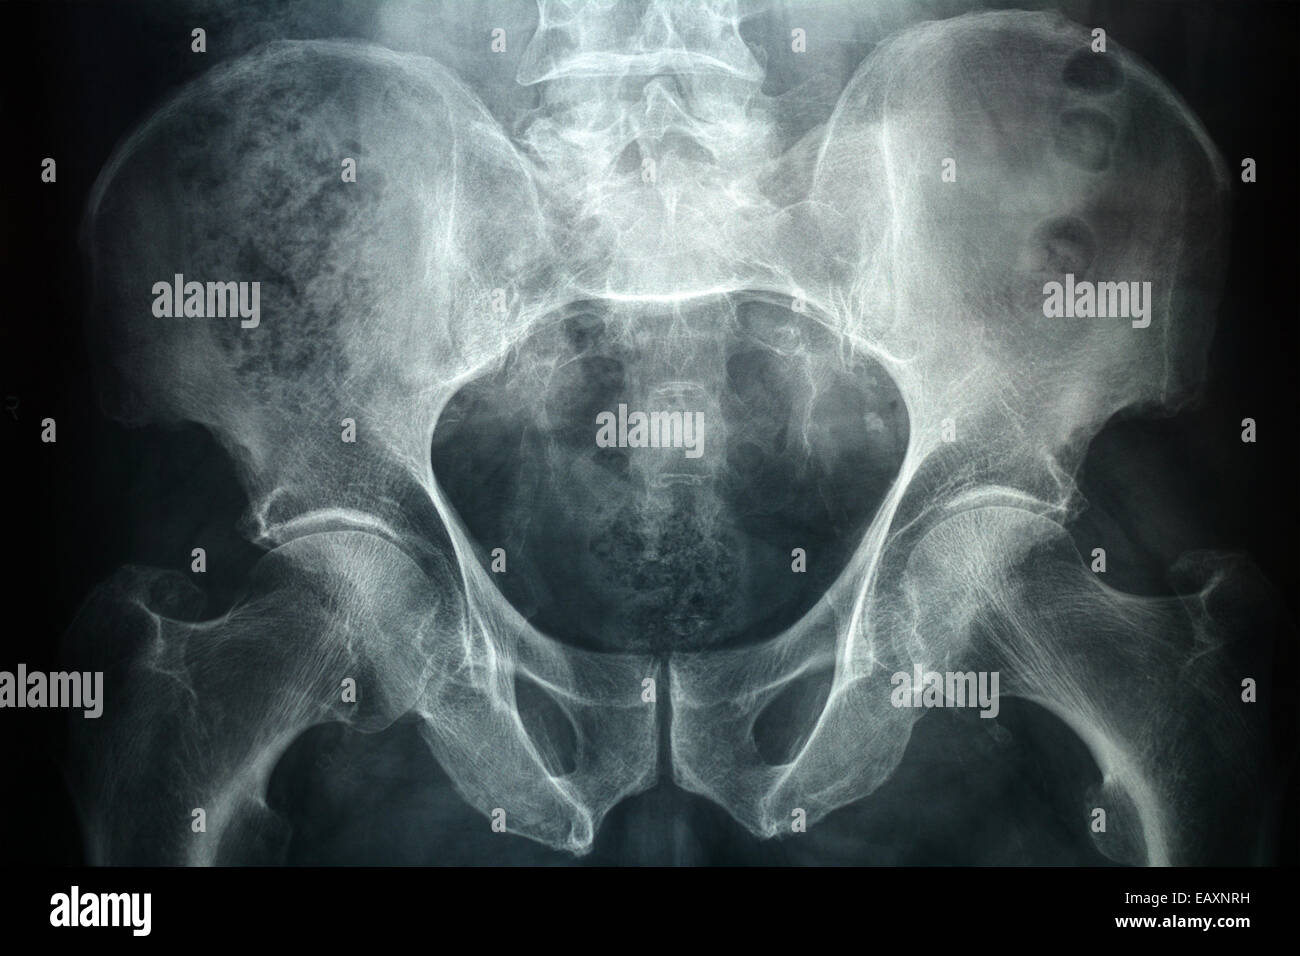 Xray of a male pelvic, it's a high resolution 24 mp photo not a scan. - Stock Image